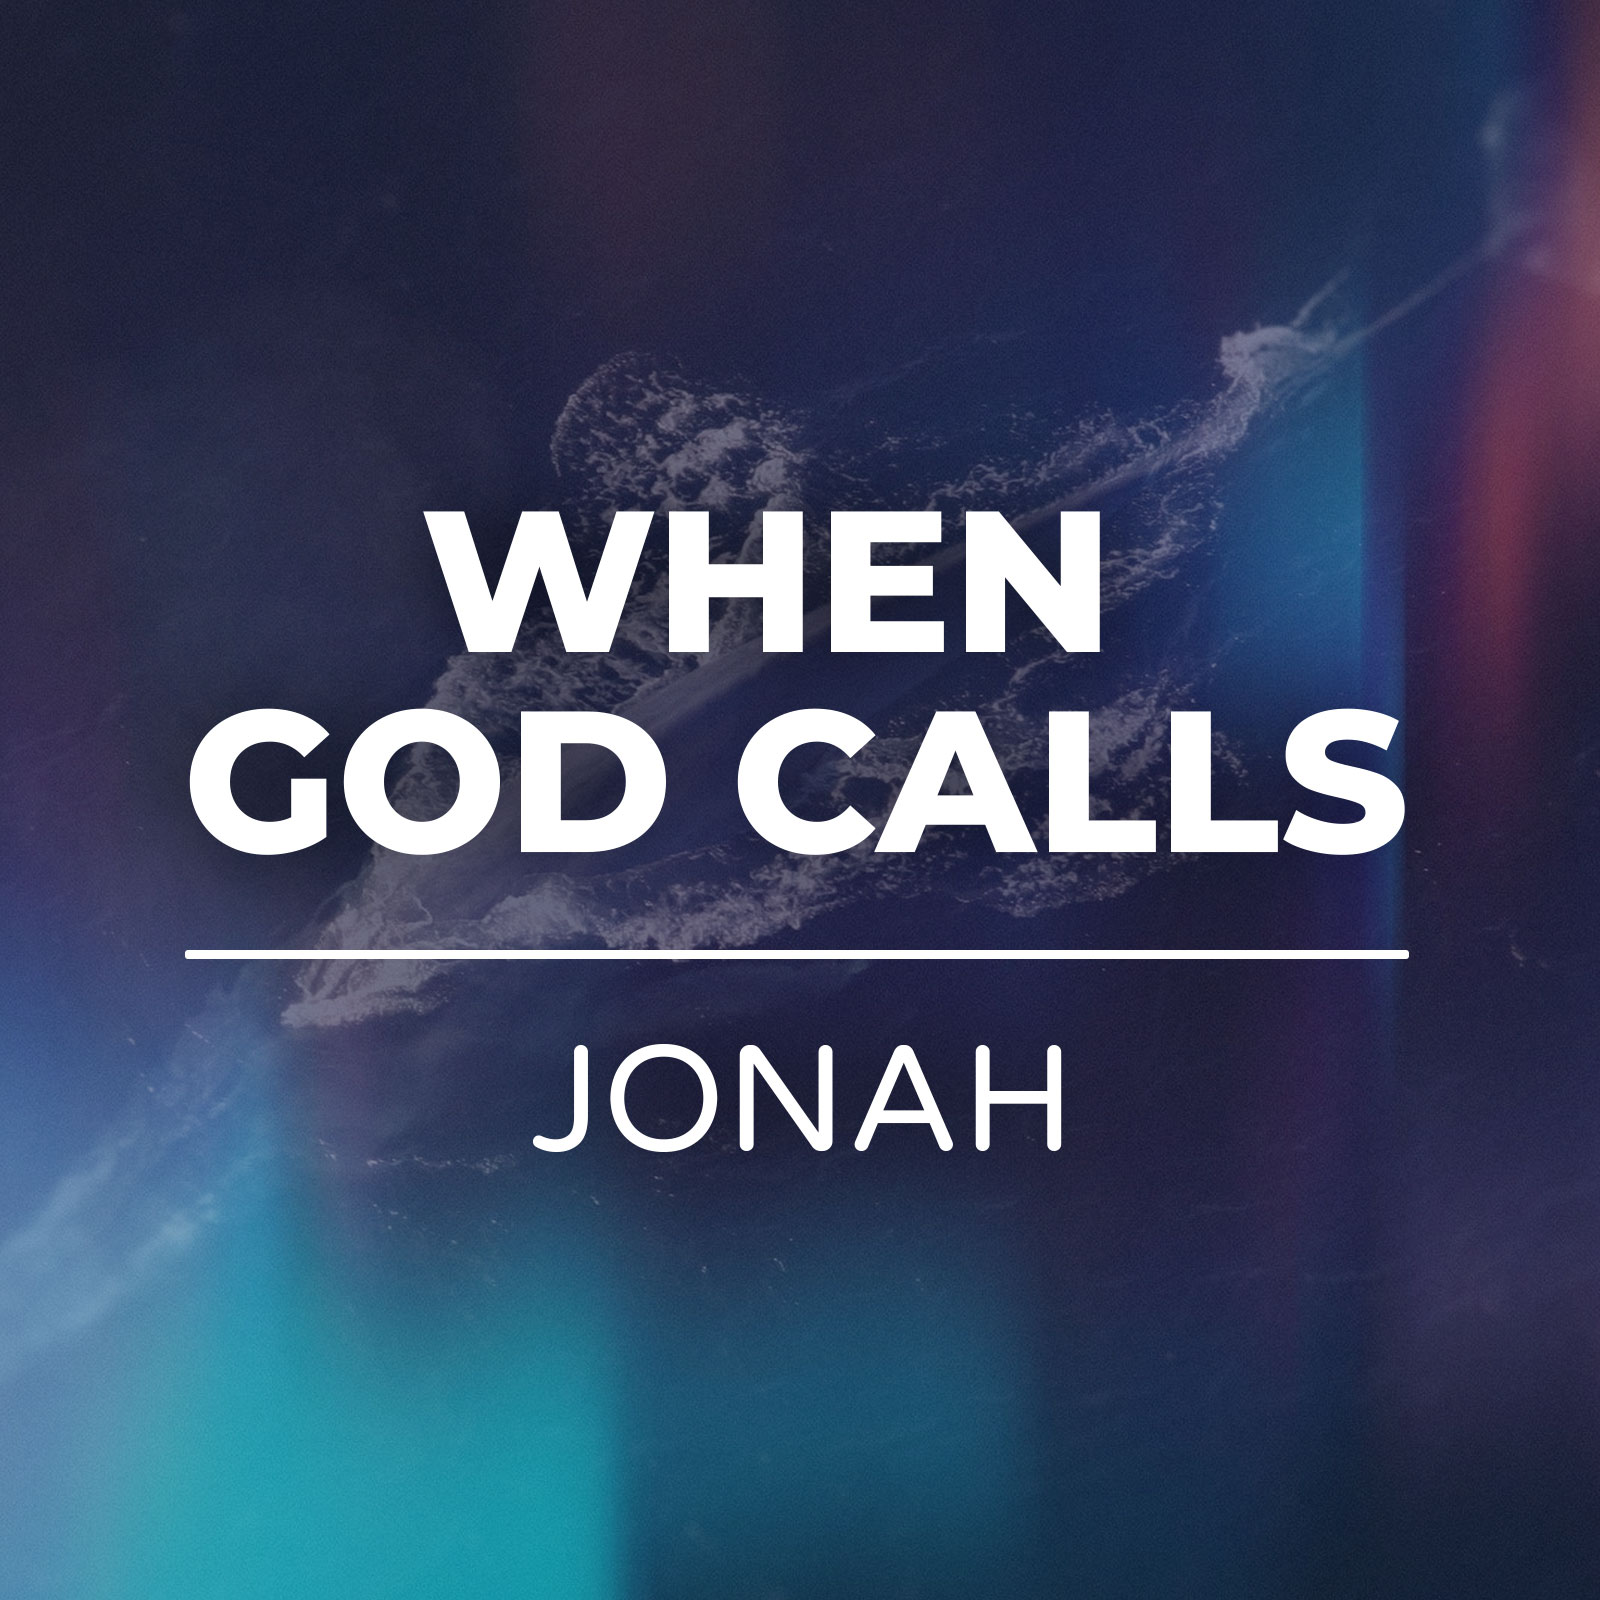 When God Calls - Jonah - Sermon Series - Hope Church Huddersfield